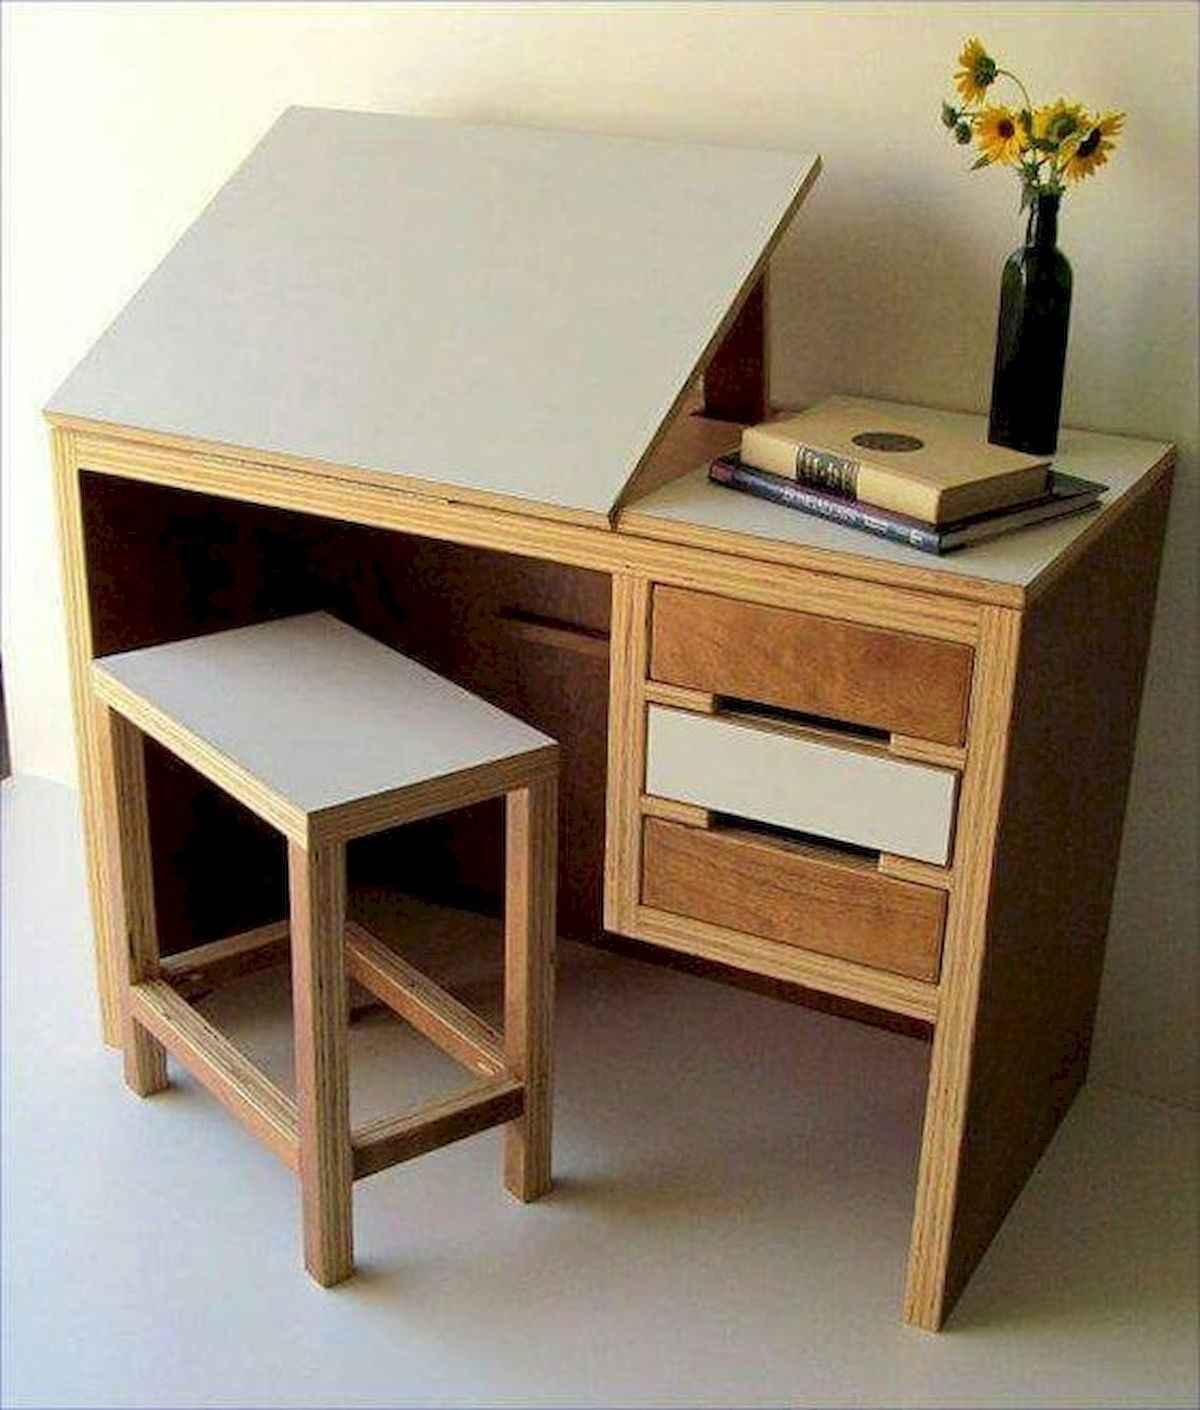 Admirable Drafting Table With Drawers Ideas On Foter Home Interior And Landscaping Mentranervesignezvosmurscom